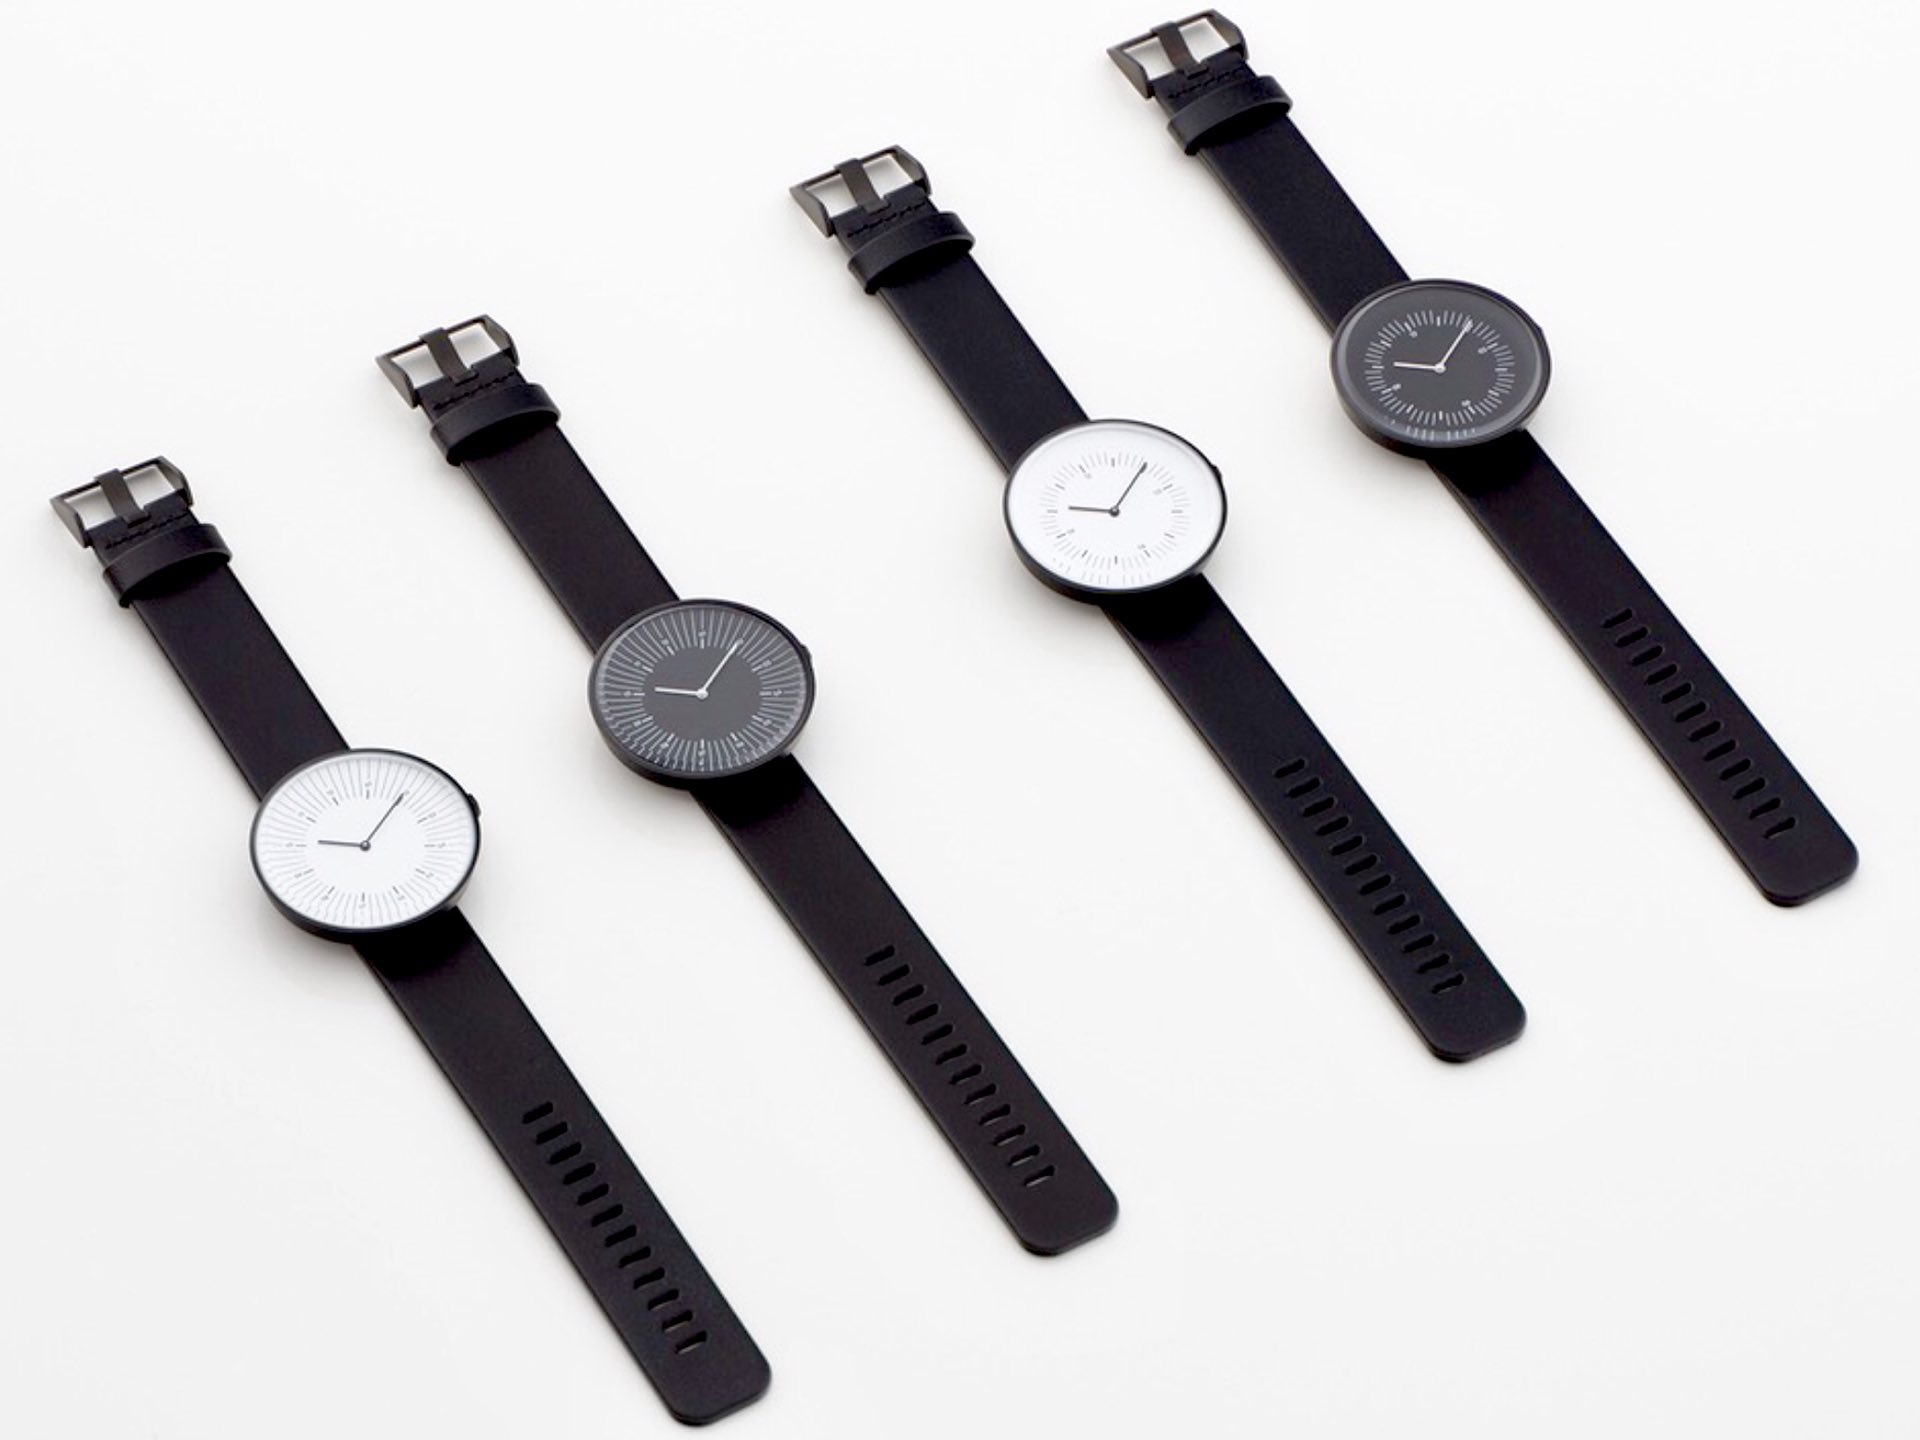 nomad-inline-and-outline-watches